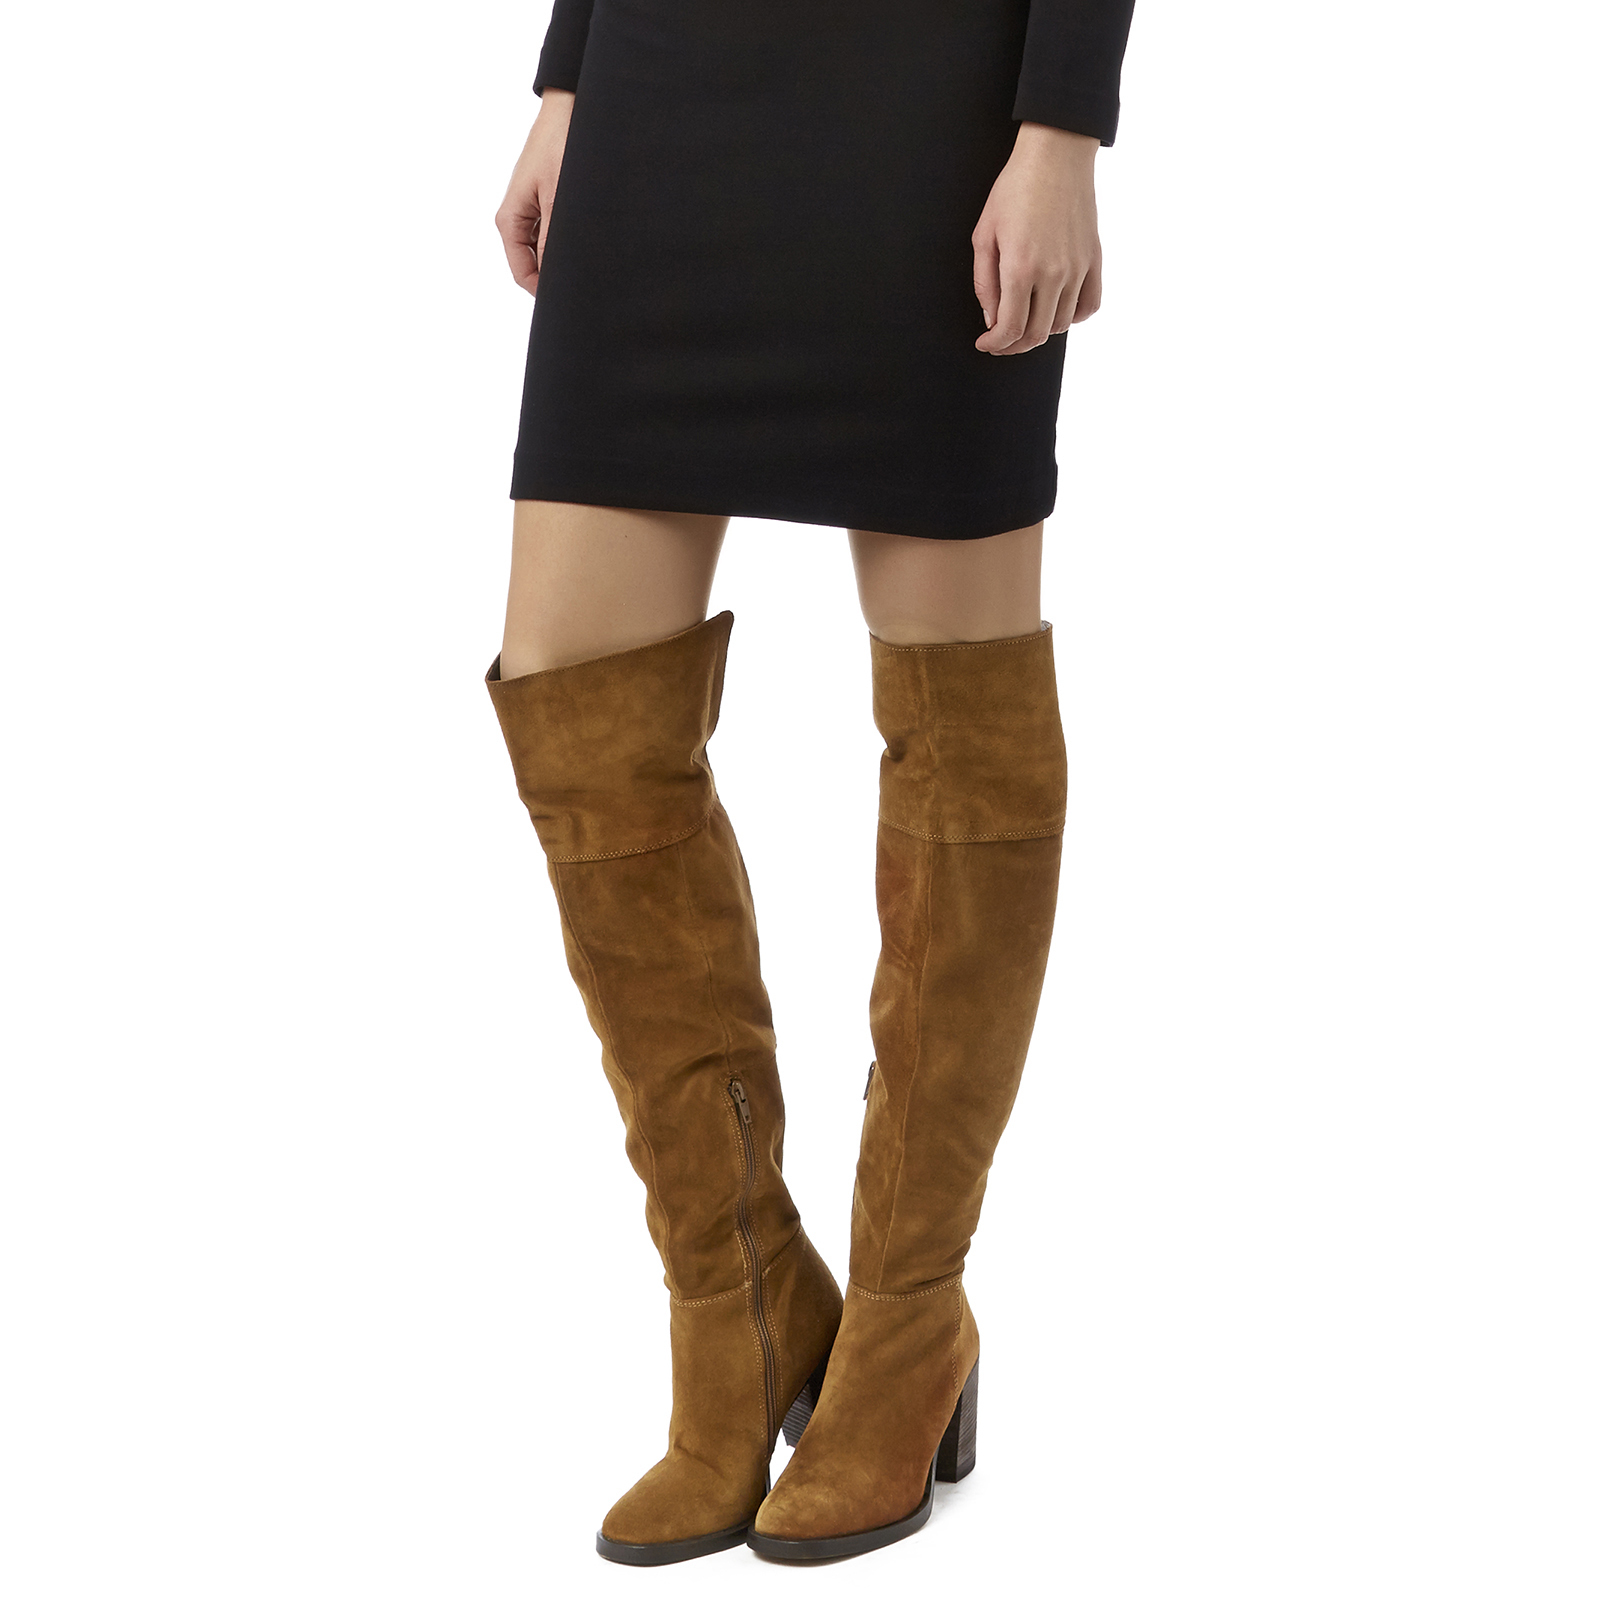 4cfd8f3f5 WISH Carvela Wish Tan Suede High Leg Boots Heel Over The Knee Boot ...